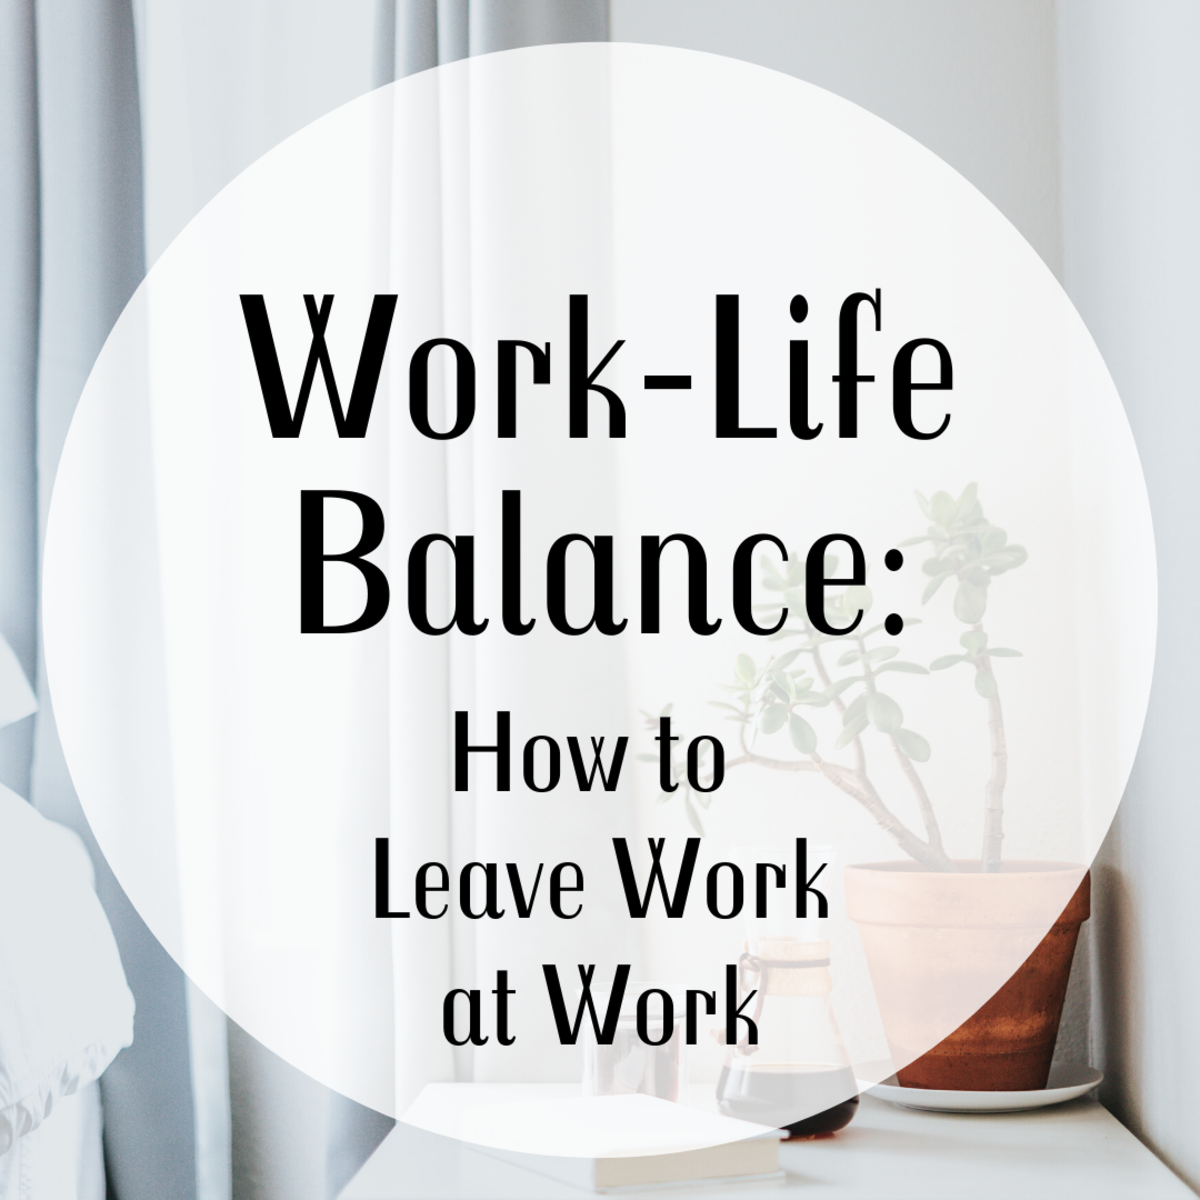 Get advice on leaving work stress at the office when you go home for the day.